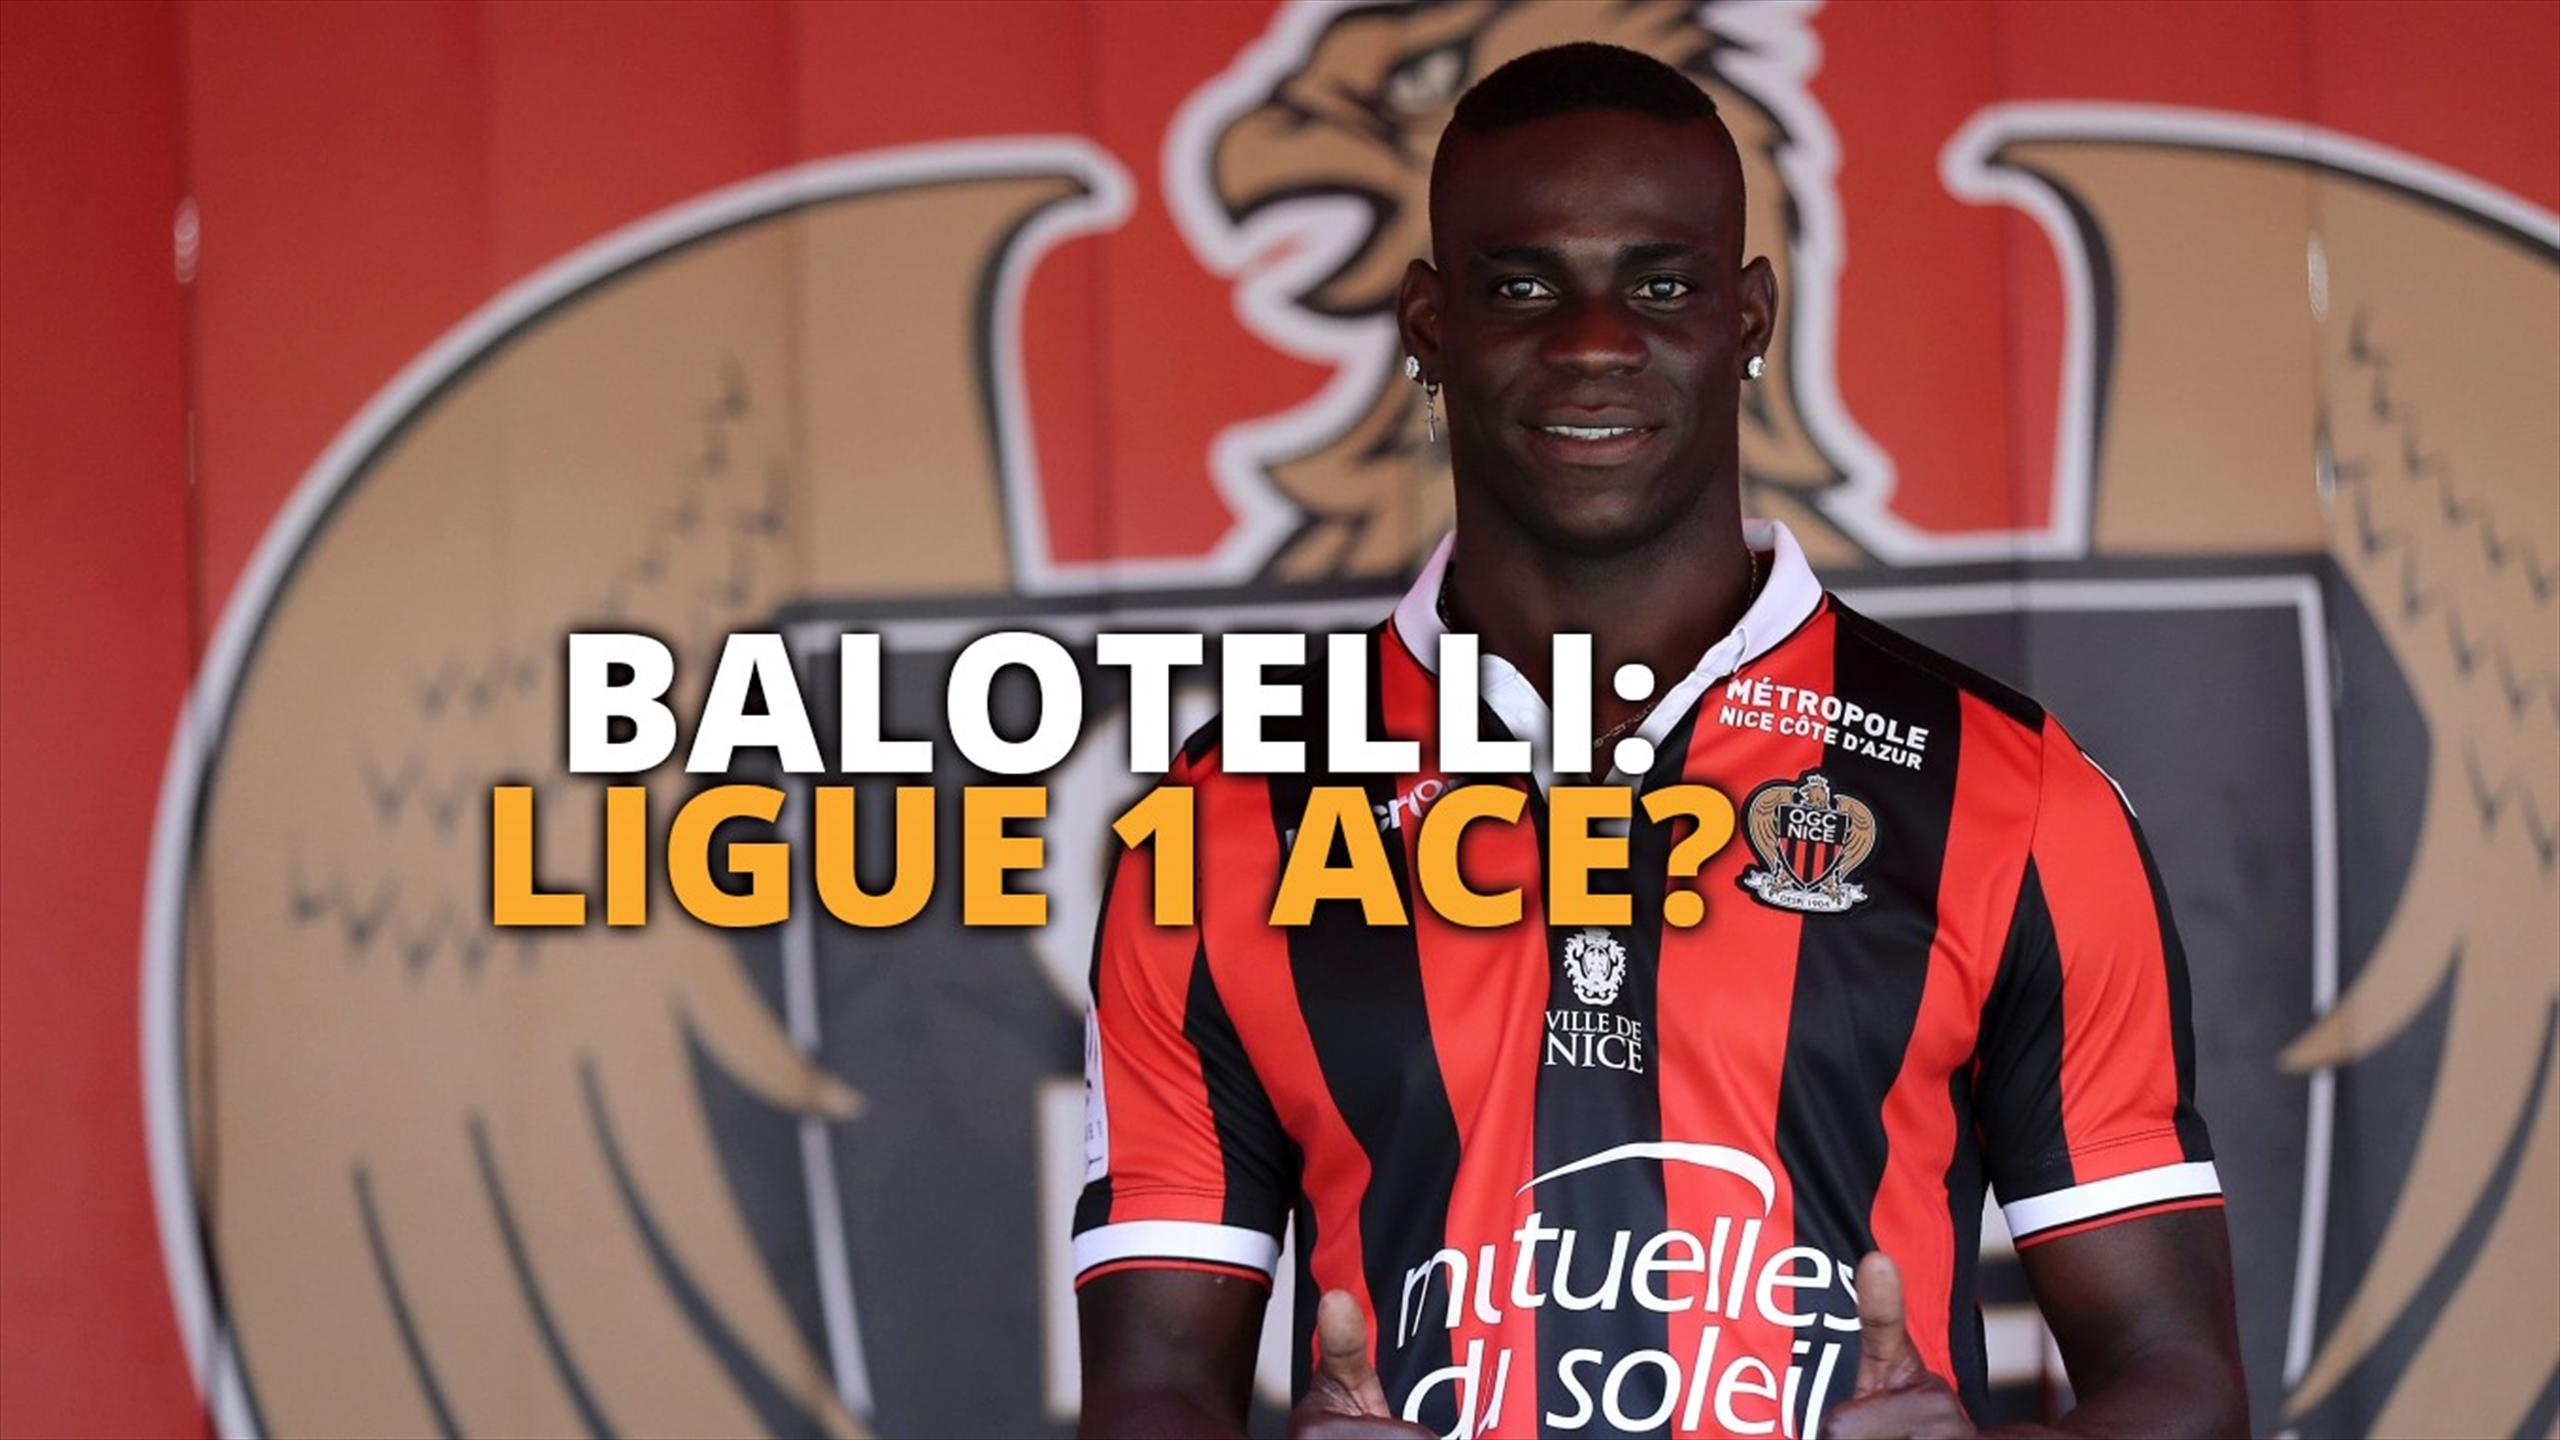 Balotelli - the Ligue 1 ace?